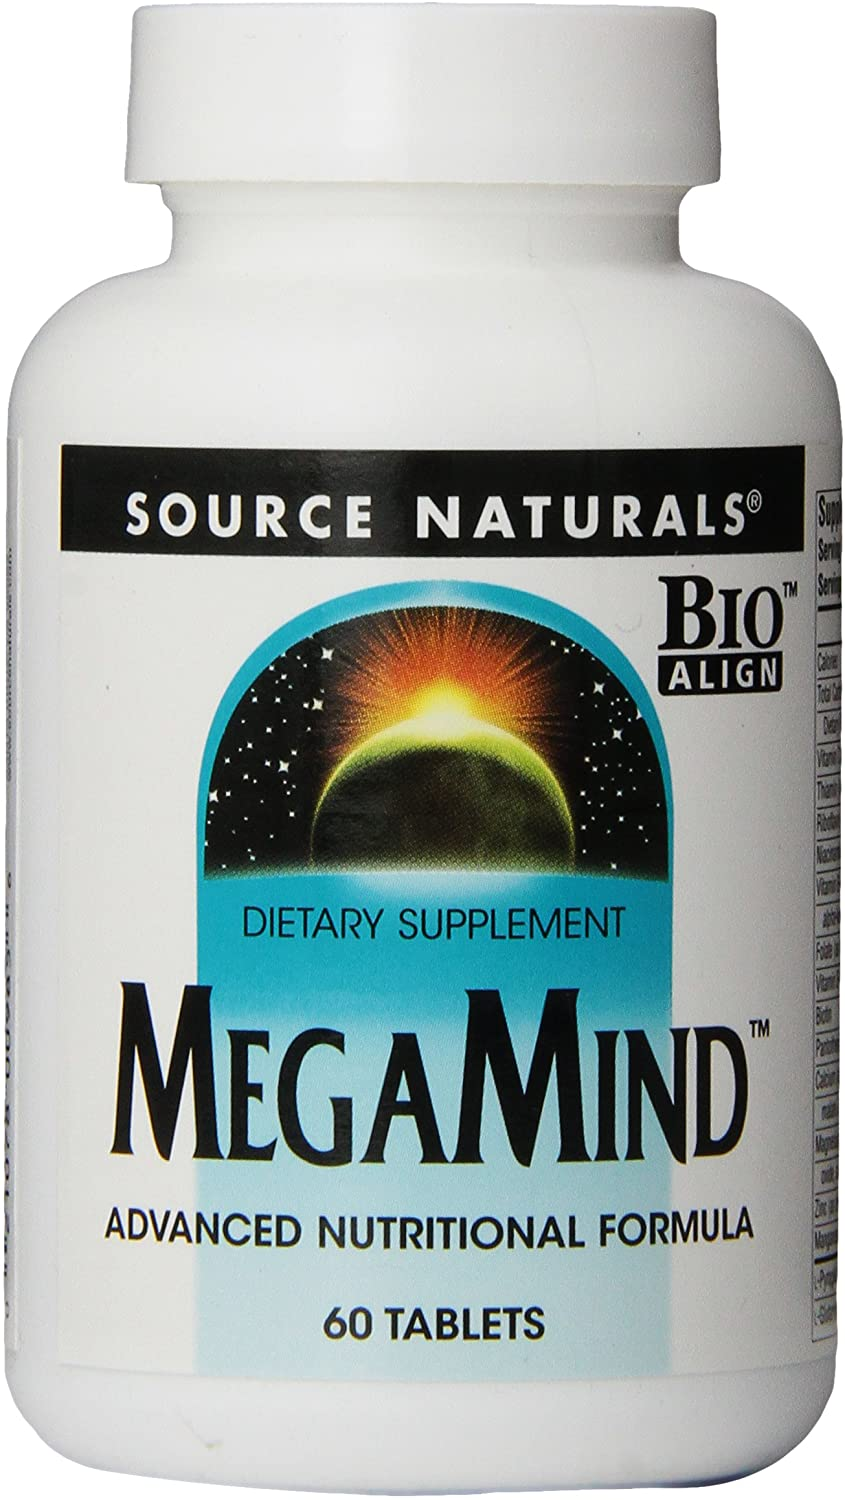 Source Naturals MegaMind Advanced Nutritional Formula & Dietary Supplement - 60 Tablets